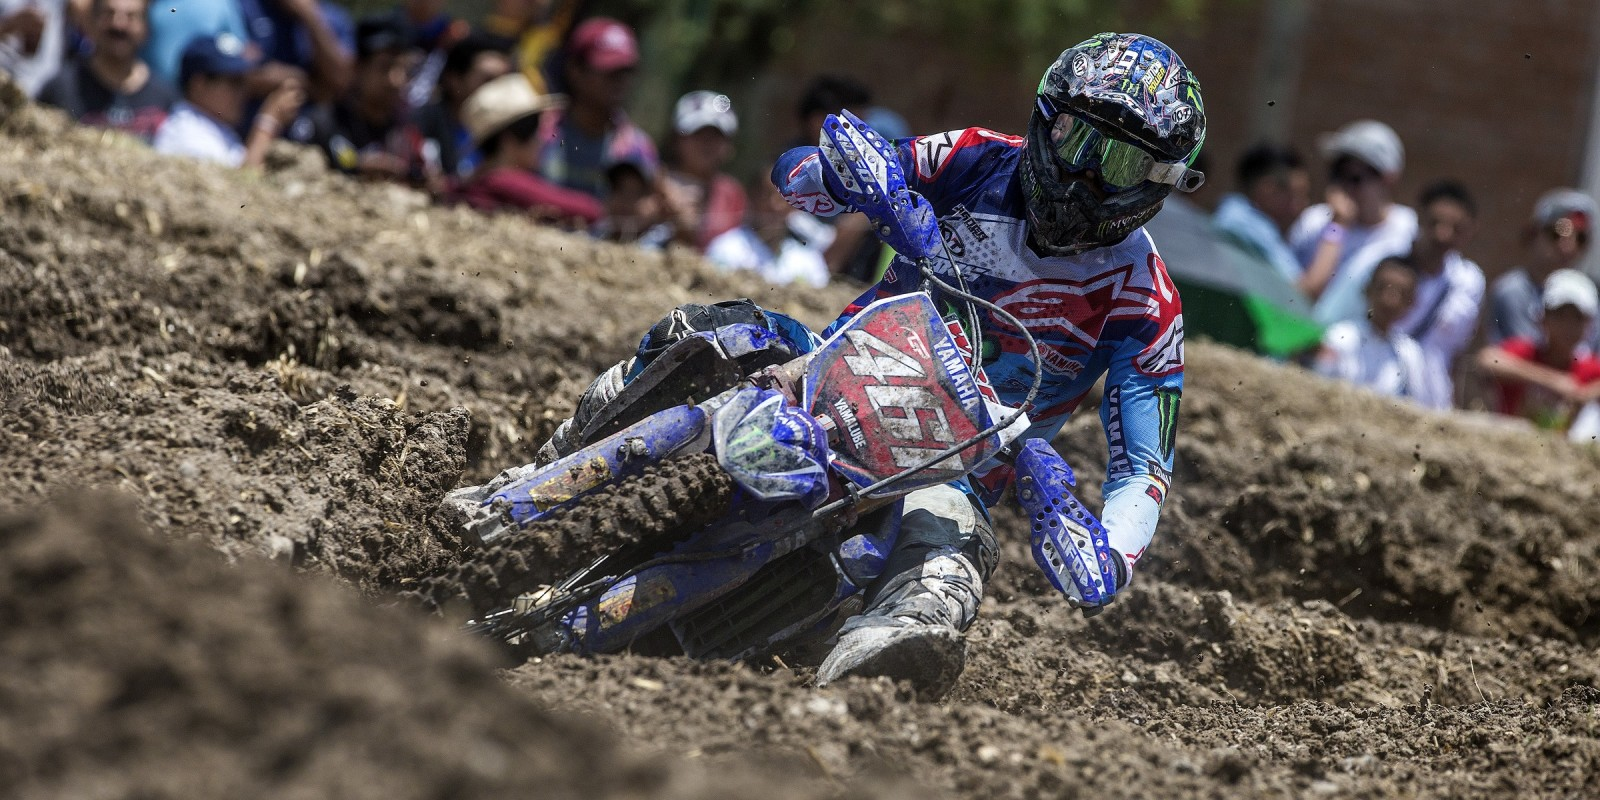 Romain Febvre at the 2016 MXGP of Mexico